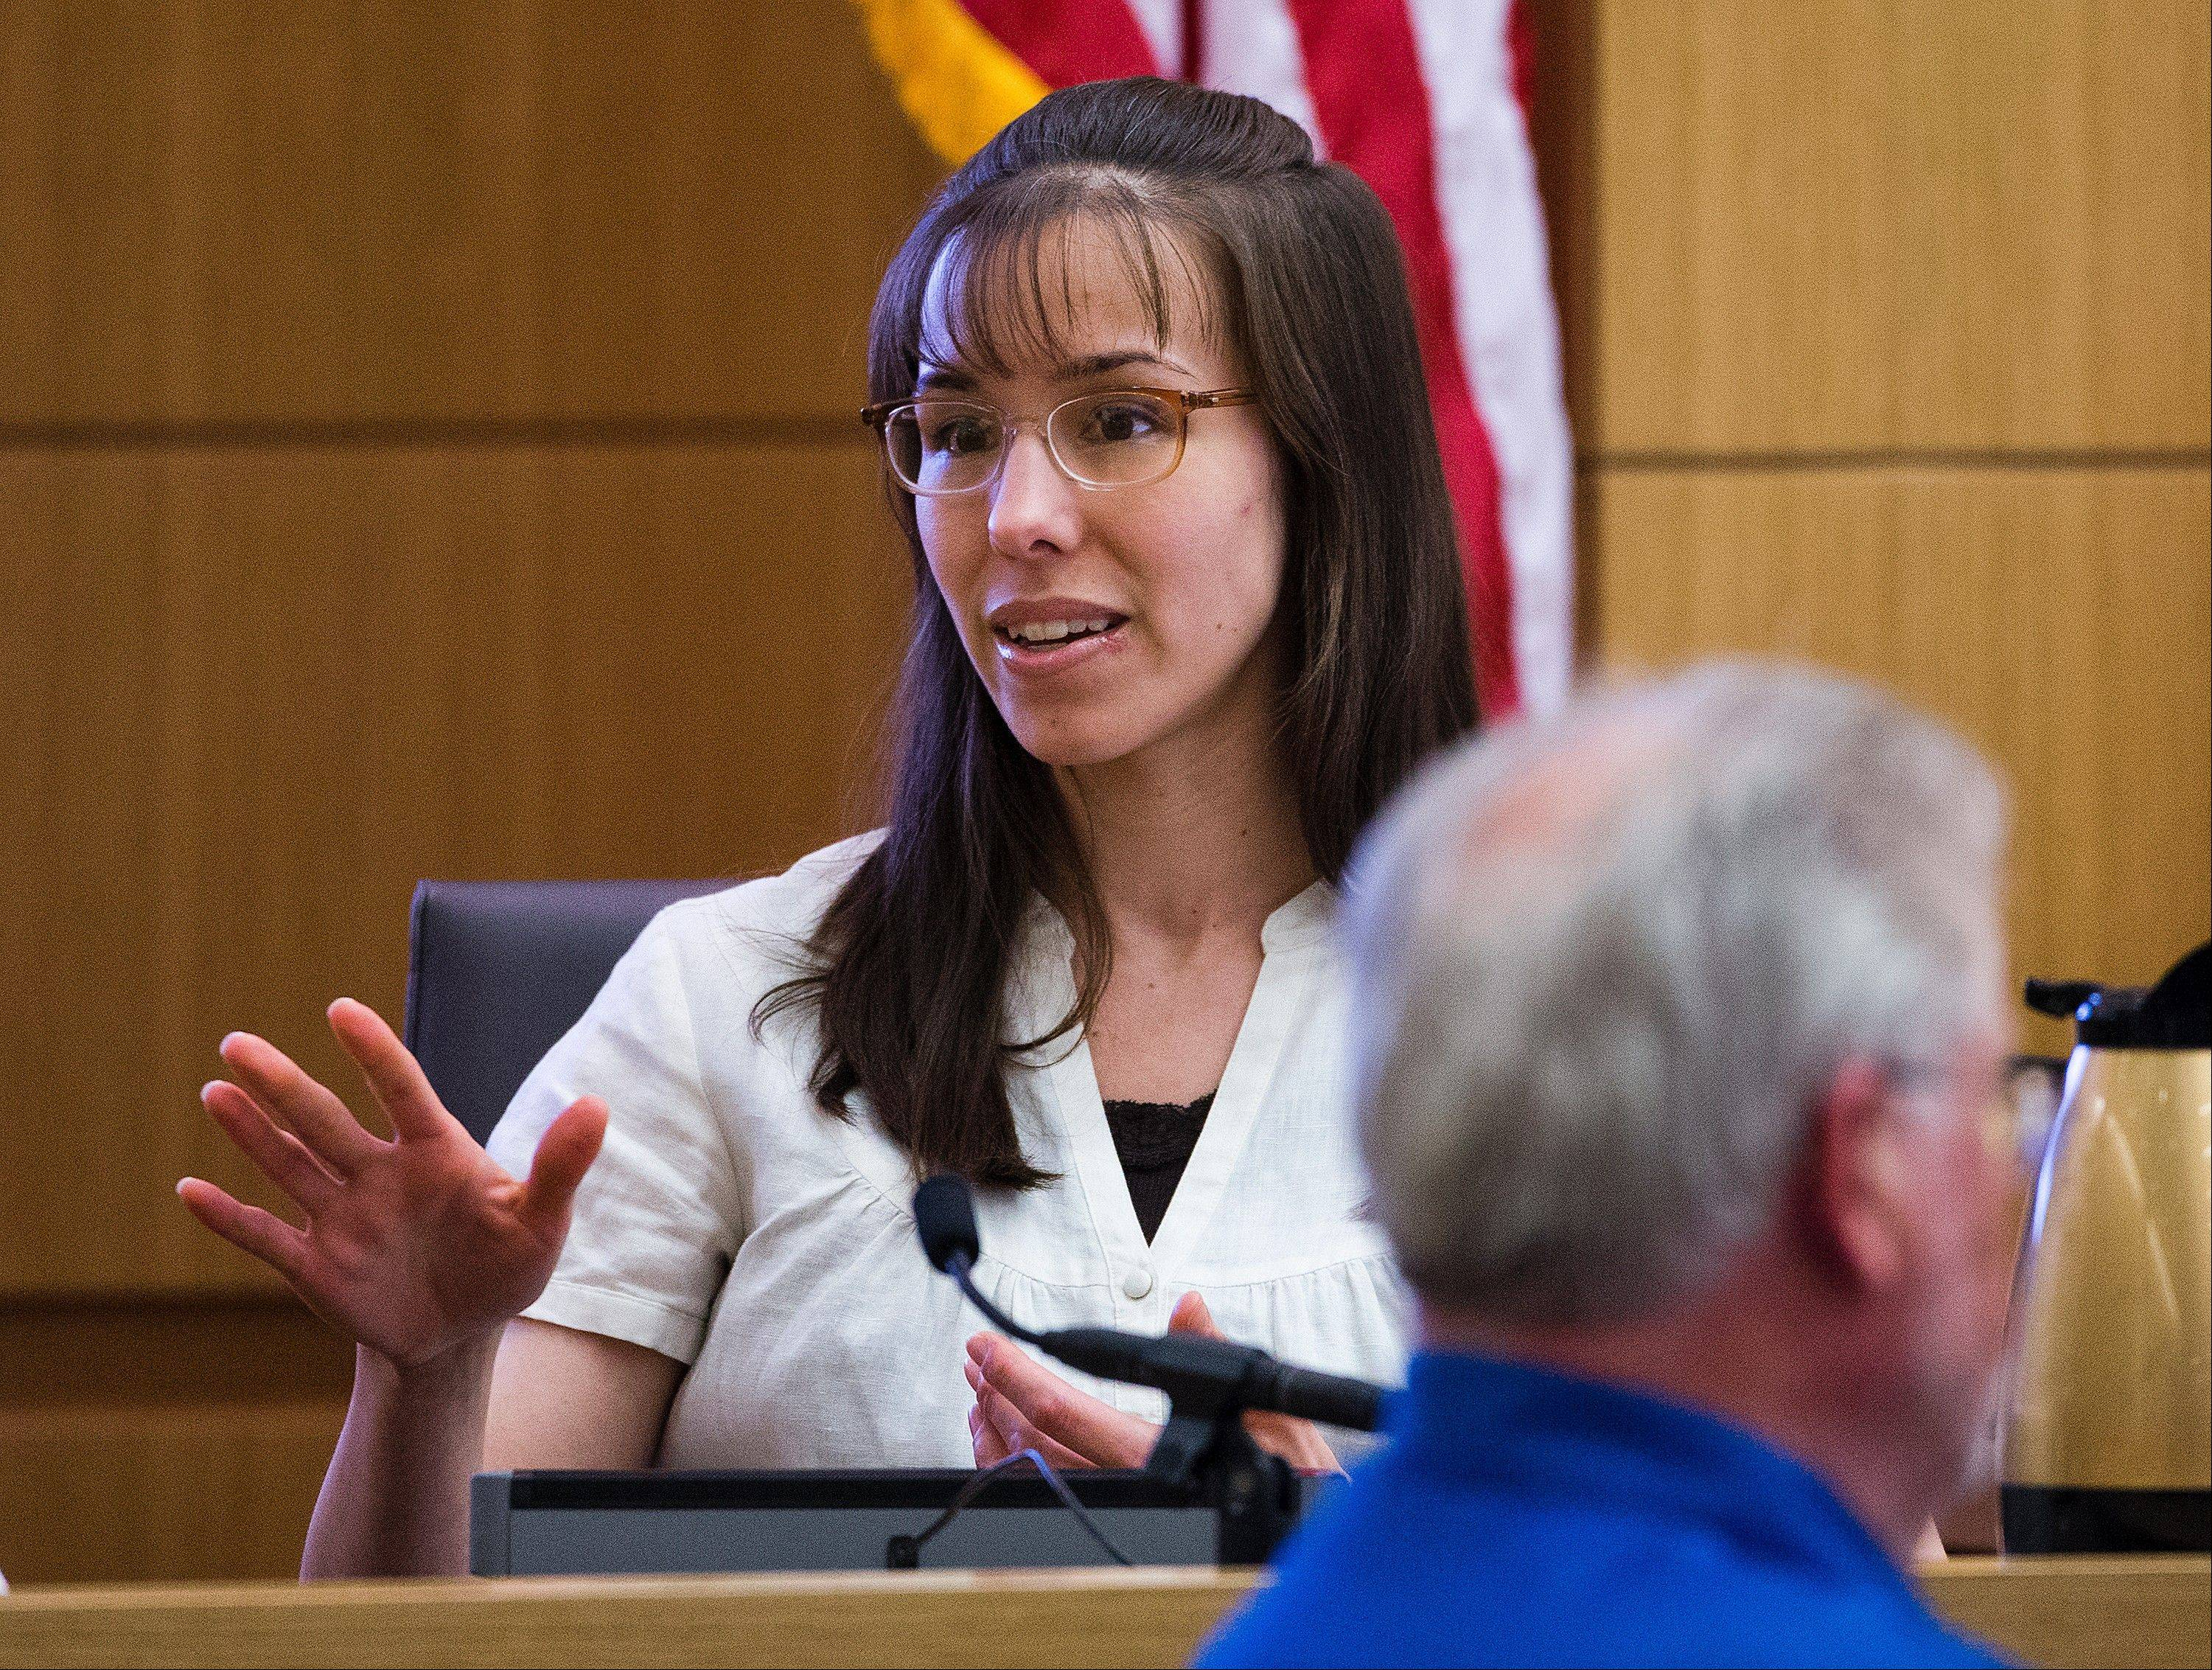 Jodi Arias answers written questions from the jury during her murder trial, Wednesday, March 6, 2013 in Maricopa County Superior Court in Phoenix. Arias is on trial for the 2008 murder of Travis Alexander.